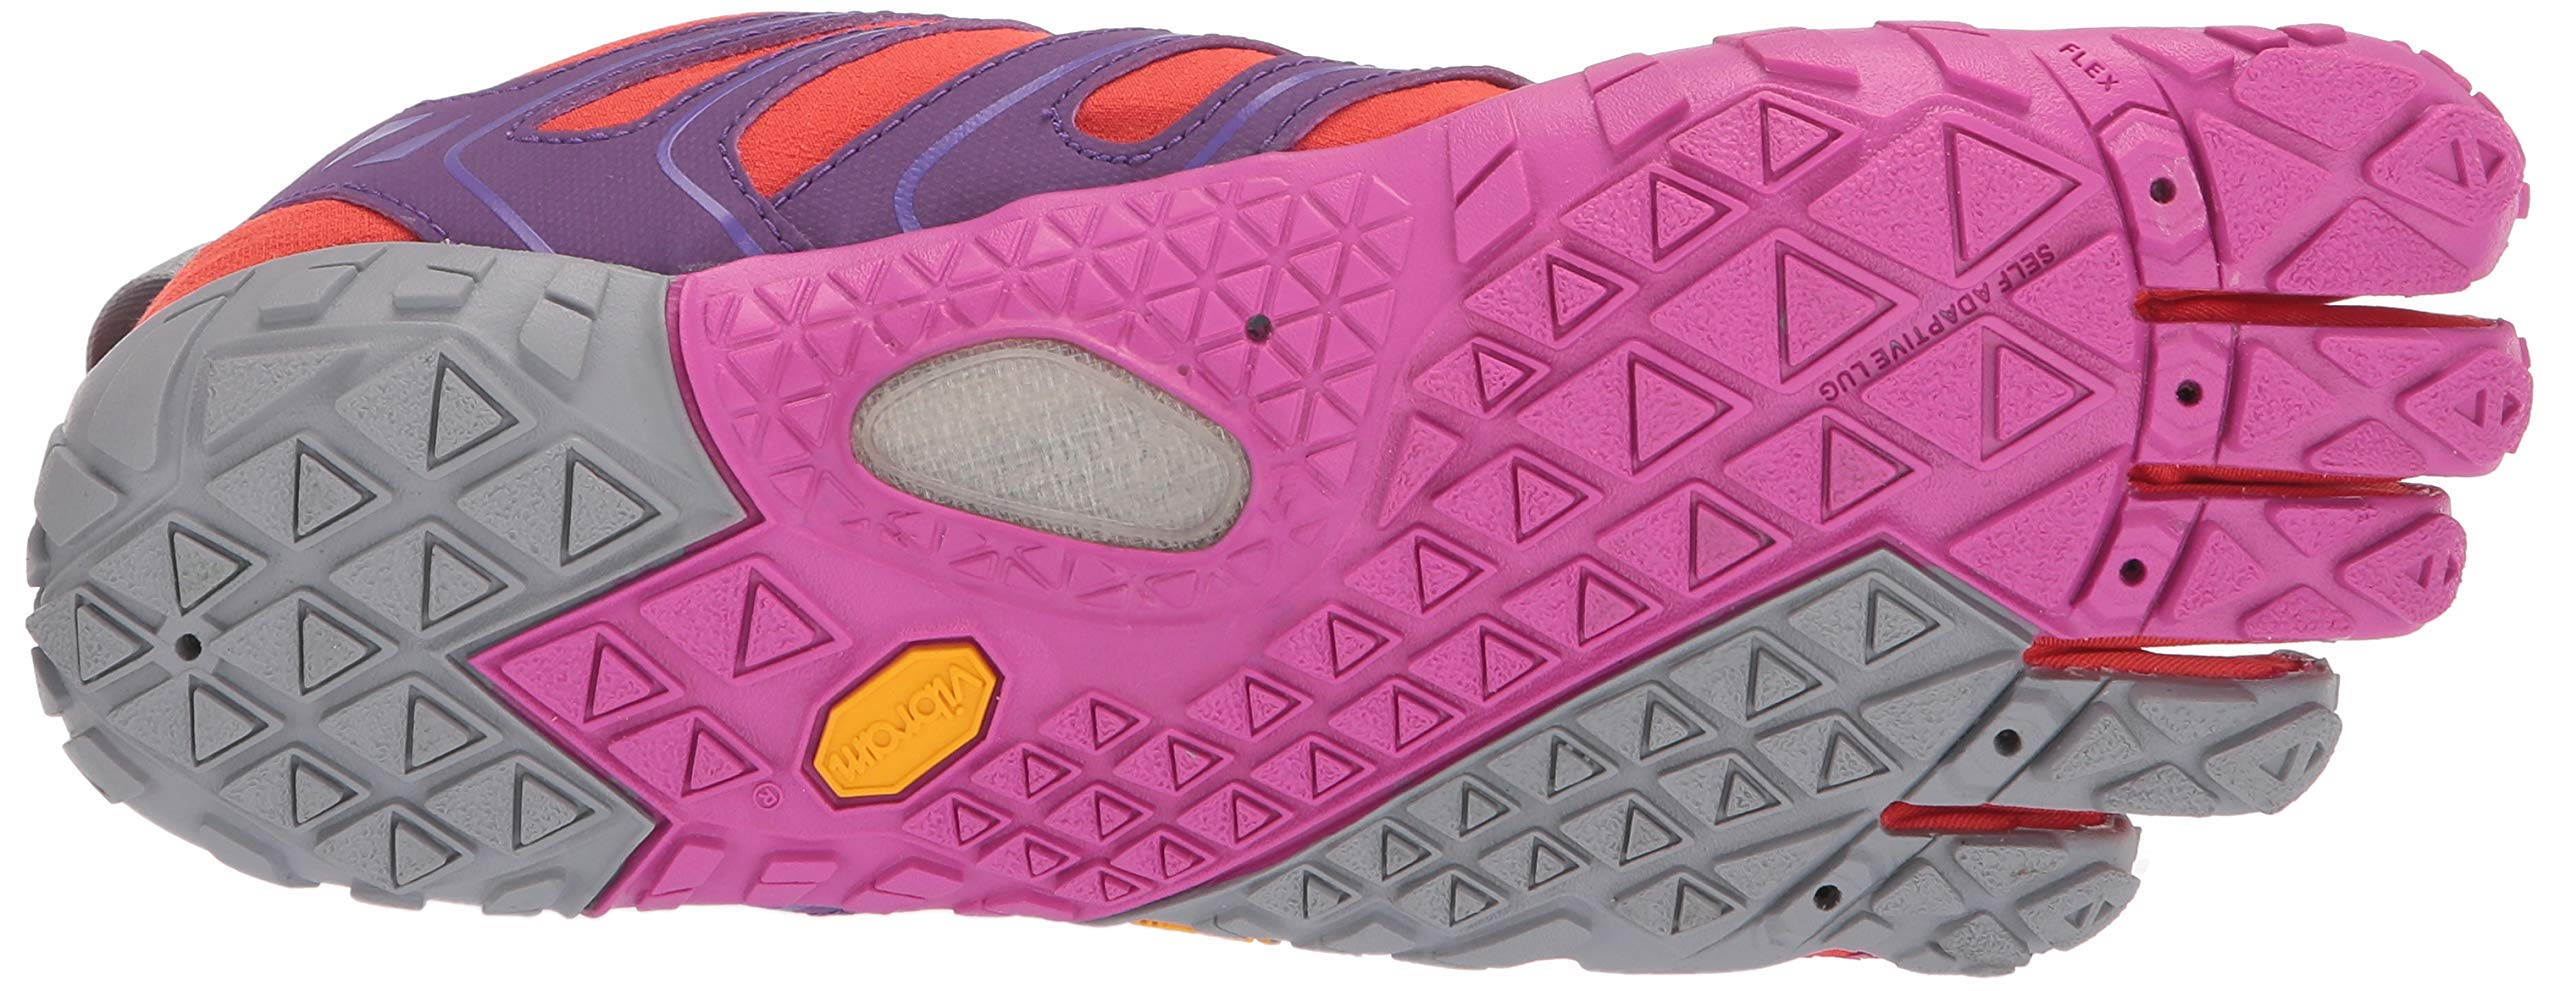 Vibram FiveFingers V-Trail, Women's Trail Running Shoes, Orange (Magenta/Orange), 6.5-7 UK (39 EU) by Vibram (Image #5)